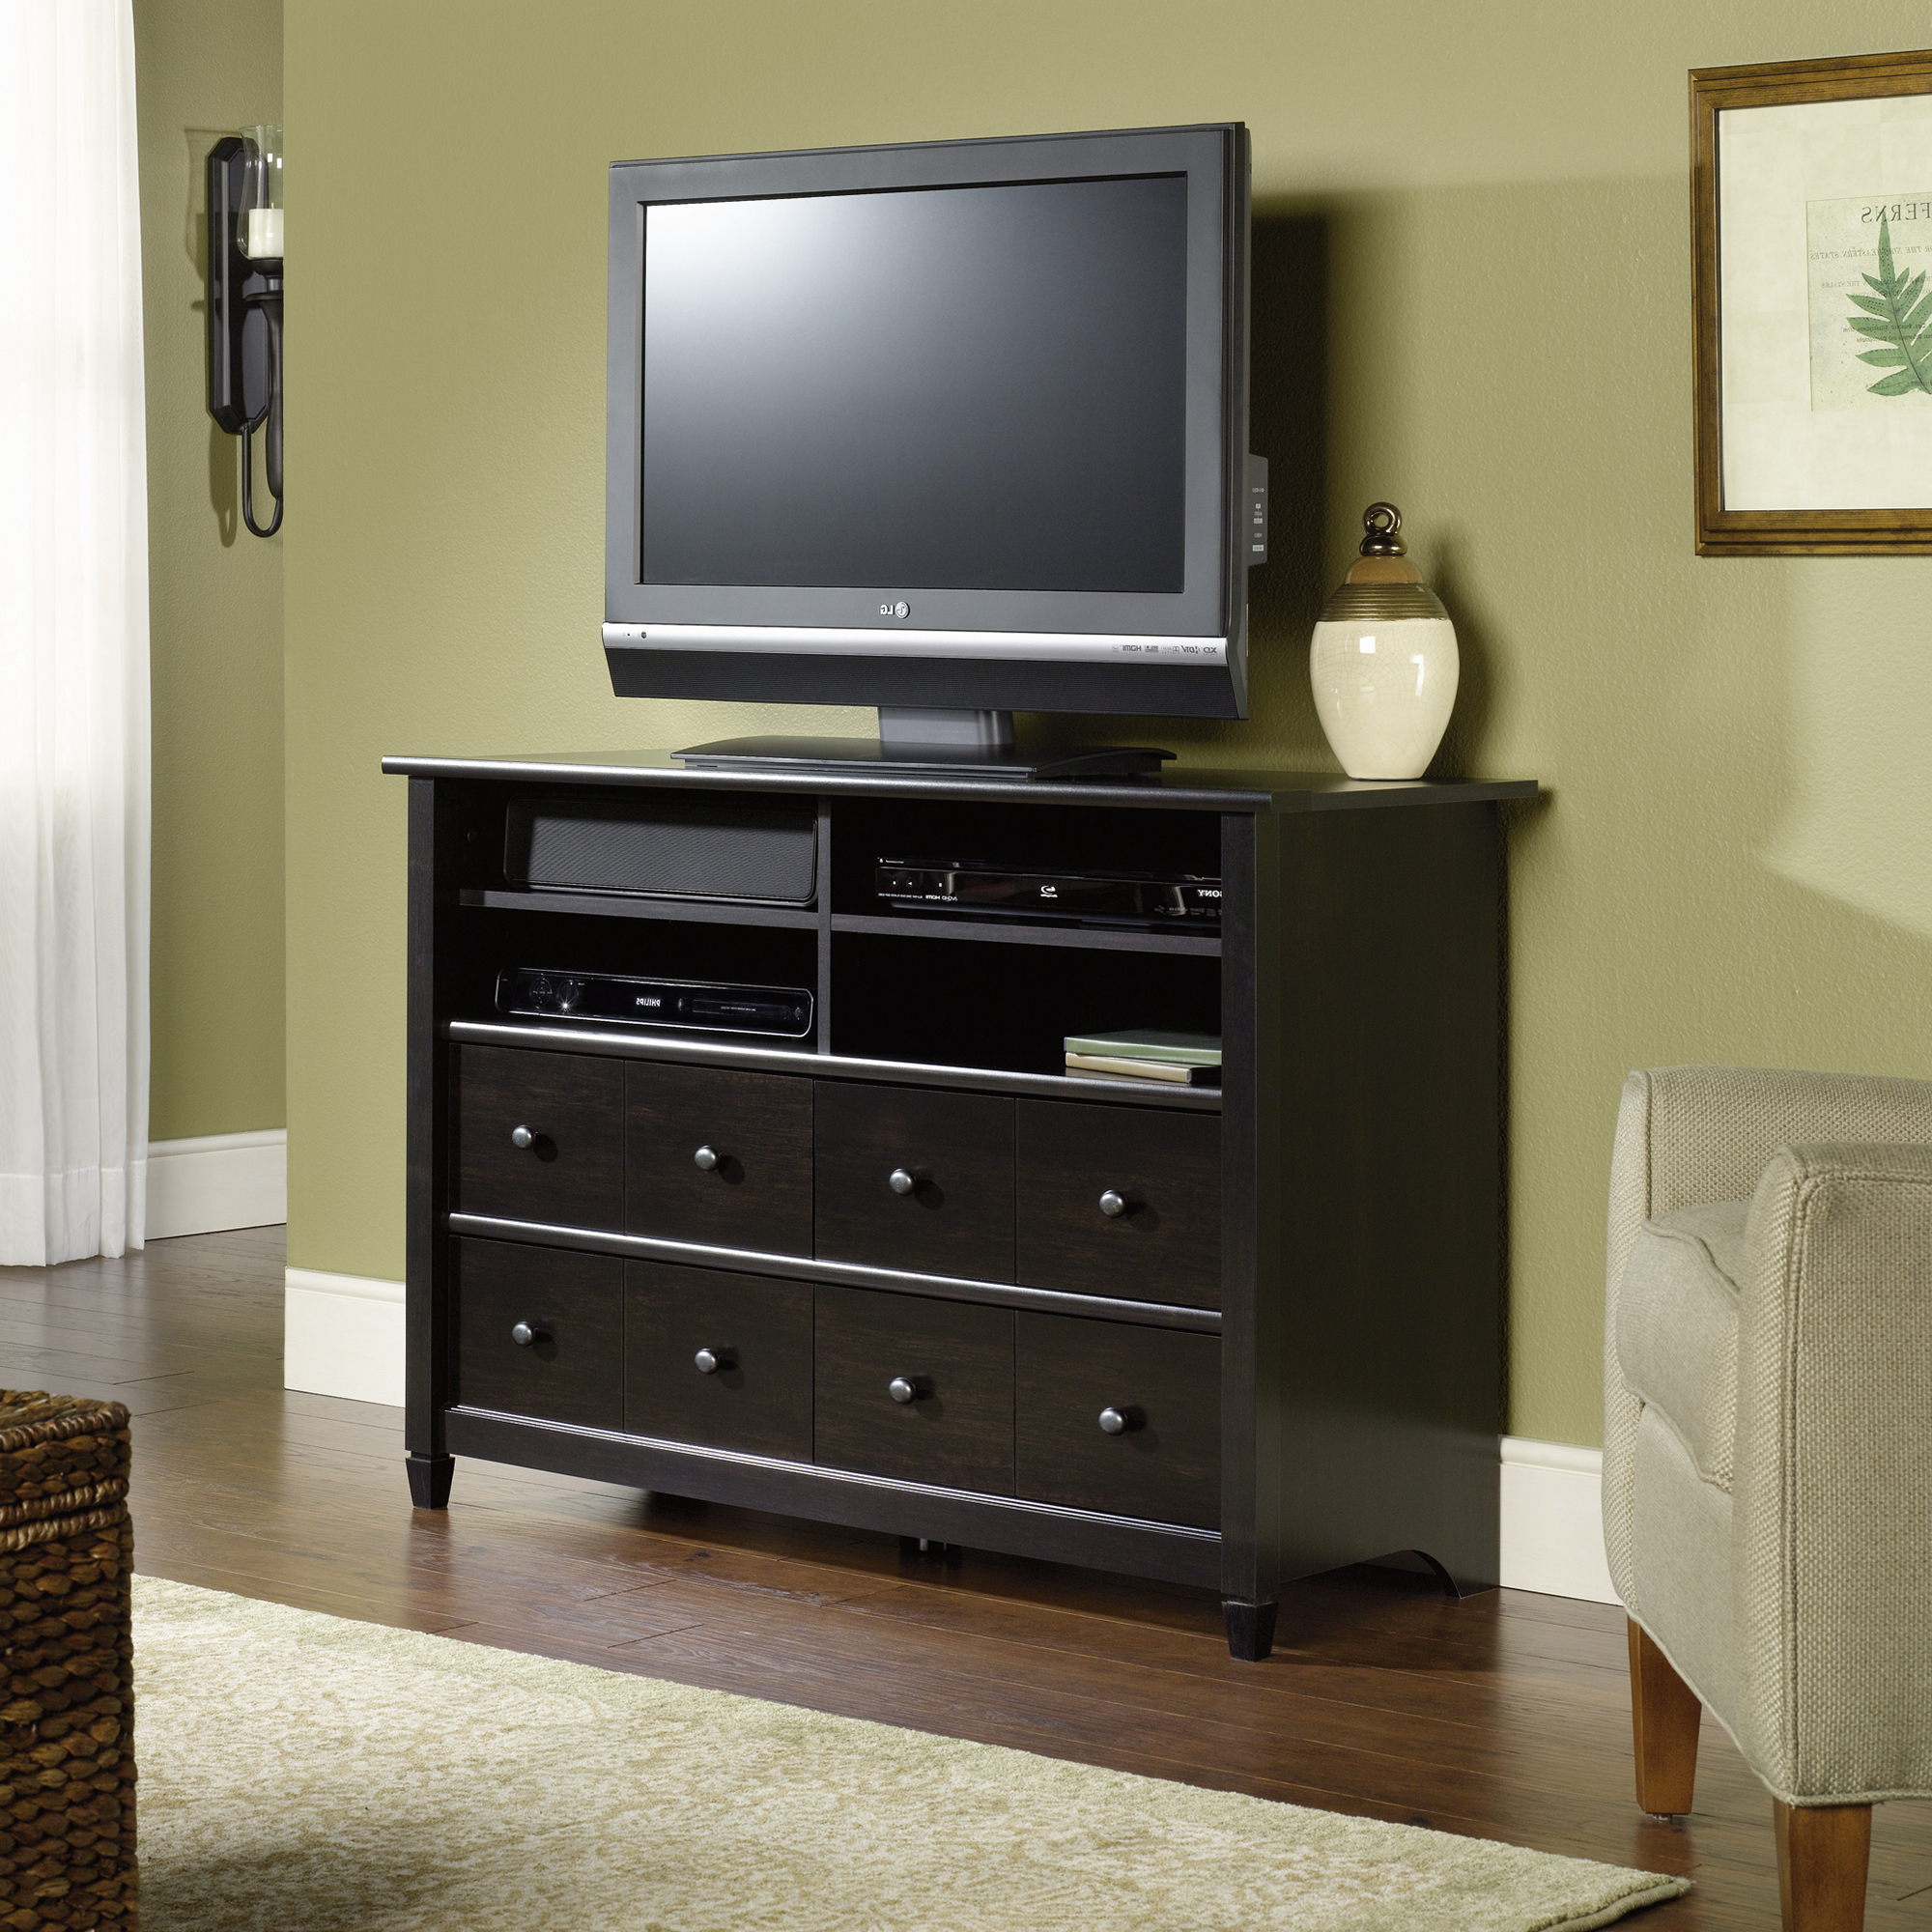 40 Inch Corner Tv Stand 36 Wide 38 30 High Tall Rca 3 Tier 90 With Current 40 Inch Corner Tv Stands (View 9 of 20)